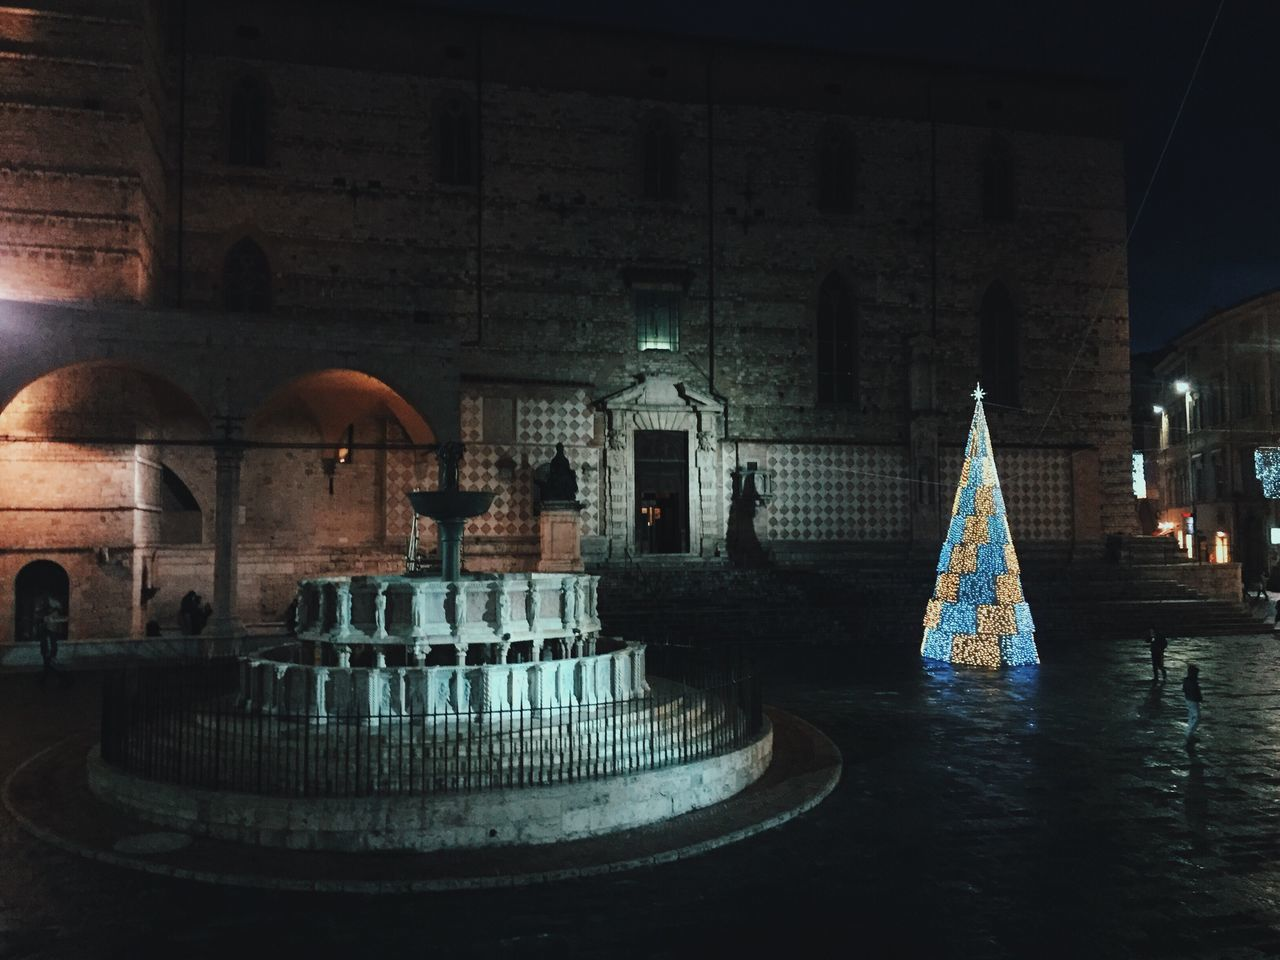 Already Xmas, by Claudia Ioan Architecture Building Exterior Illuminated Mobile Photography IPhoneography Iphone6 Christmas Tree Fountain Perugia VSCO Night Urban Urban Photography Christmas Lights Church